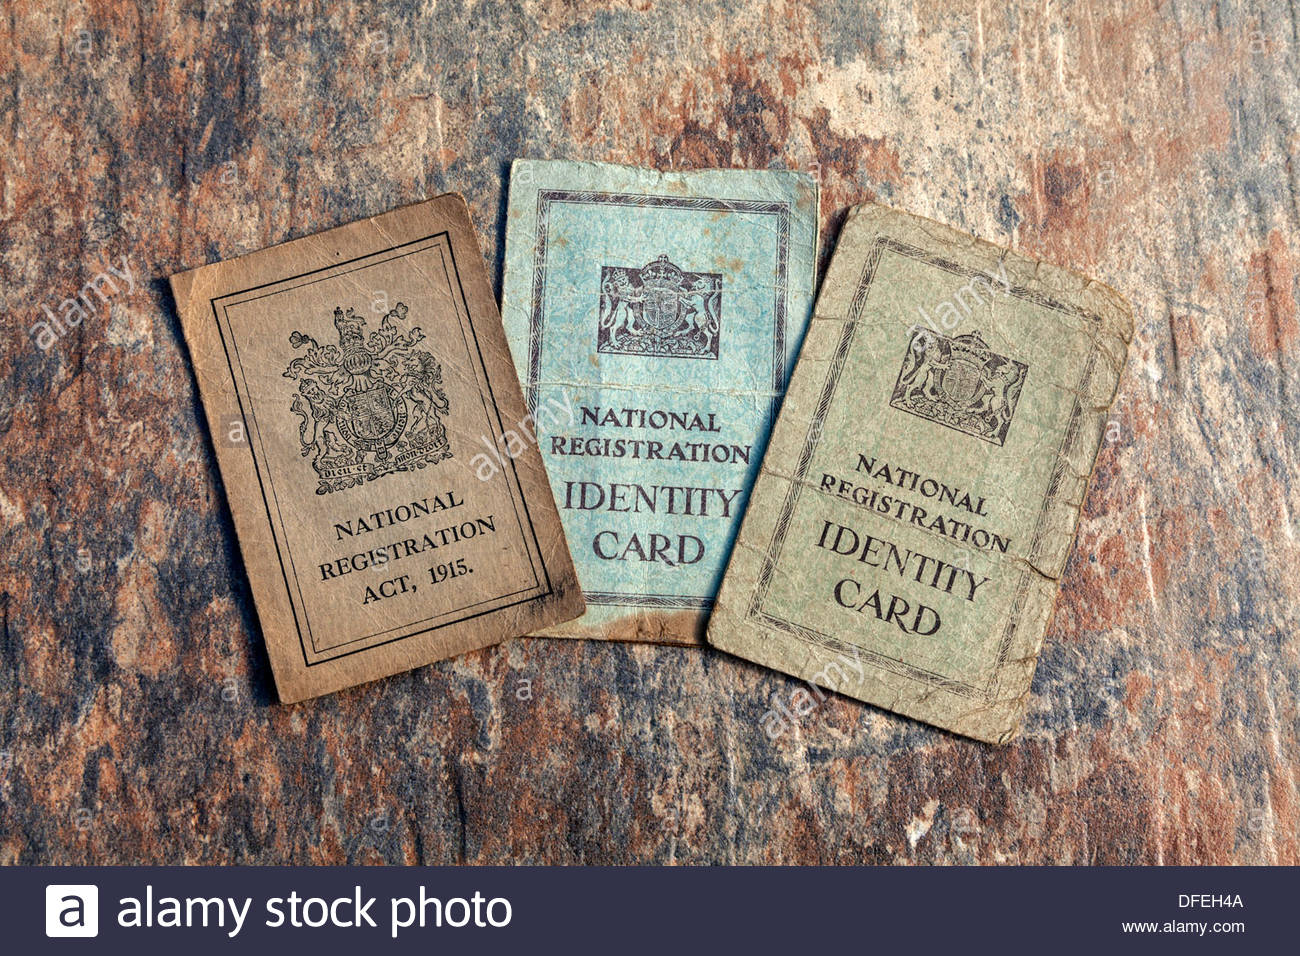 National Registration Act - Identity Cards - Stock Image